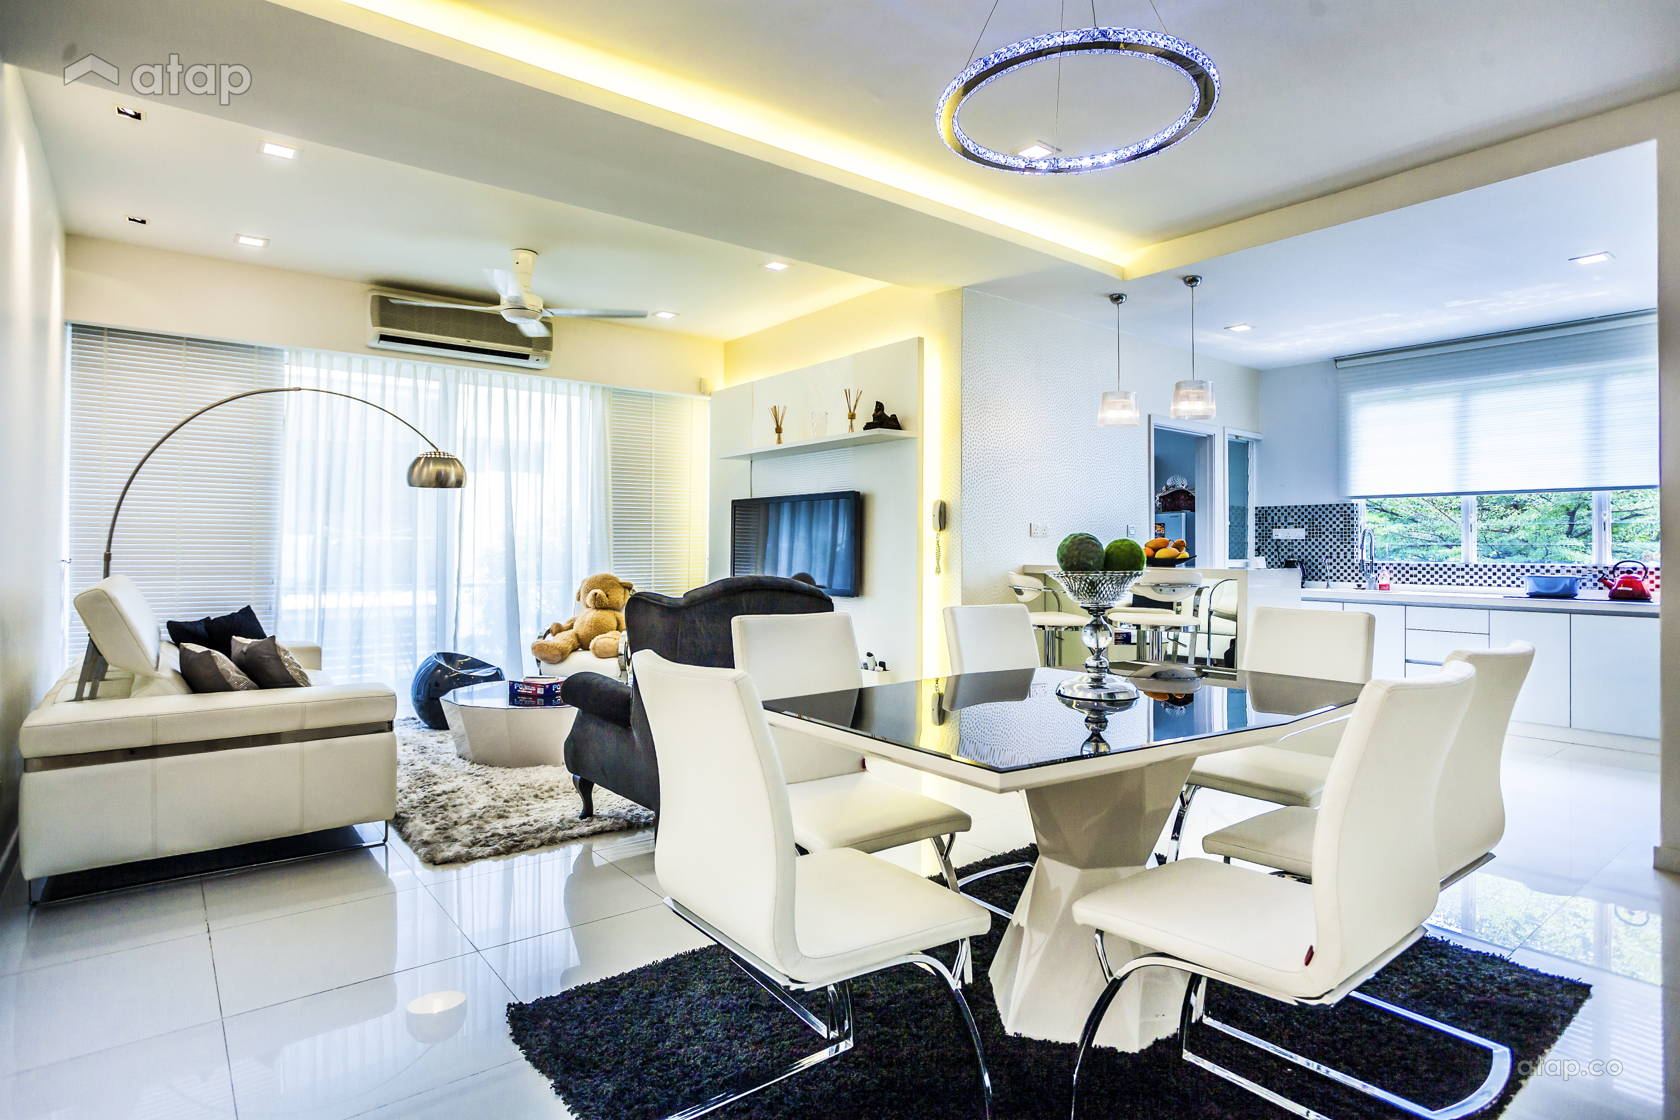 Modern Dining Room Kitchen Townhouse Share This Professional